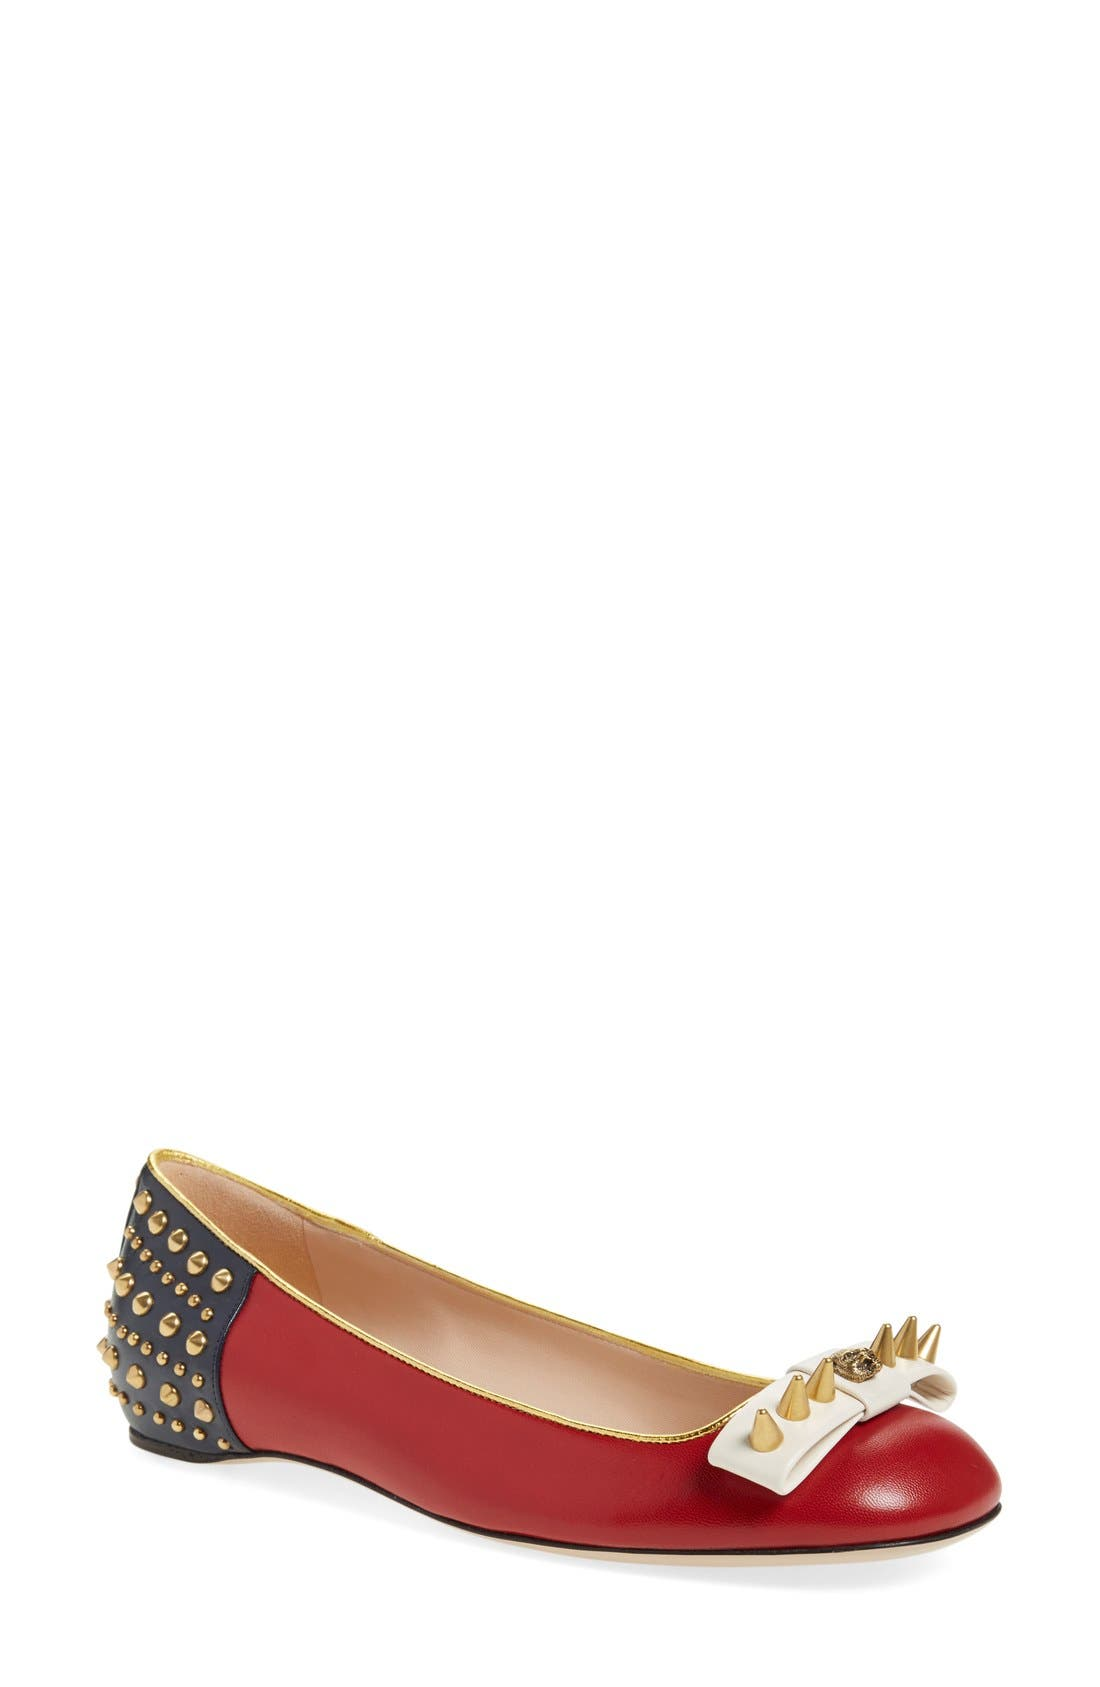 'Lexi' Studded Square Toe Flat,                             Main thumbnail 1, color,                             600